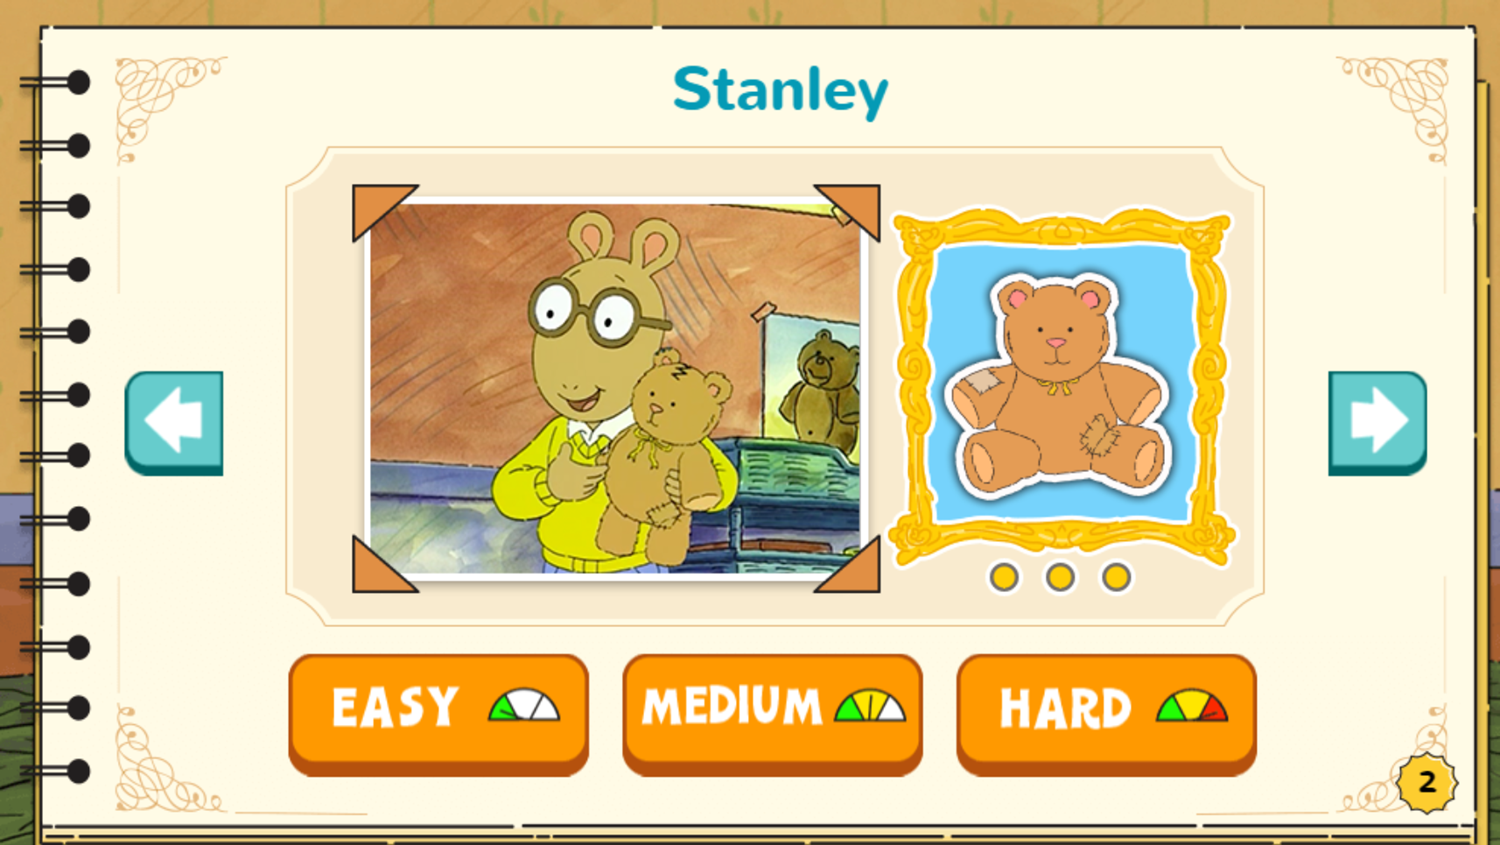 Arthur's Top 20 Game Stanley Completed Screenshot.